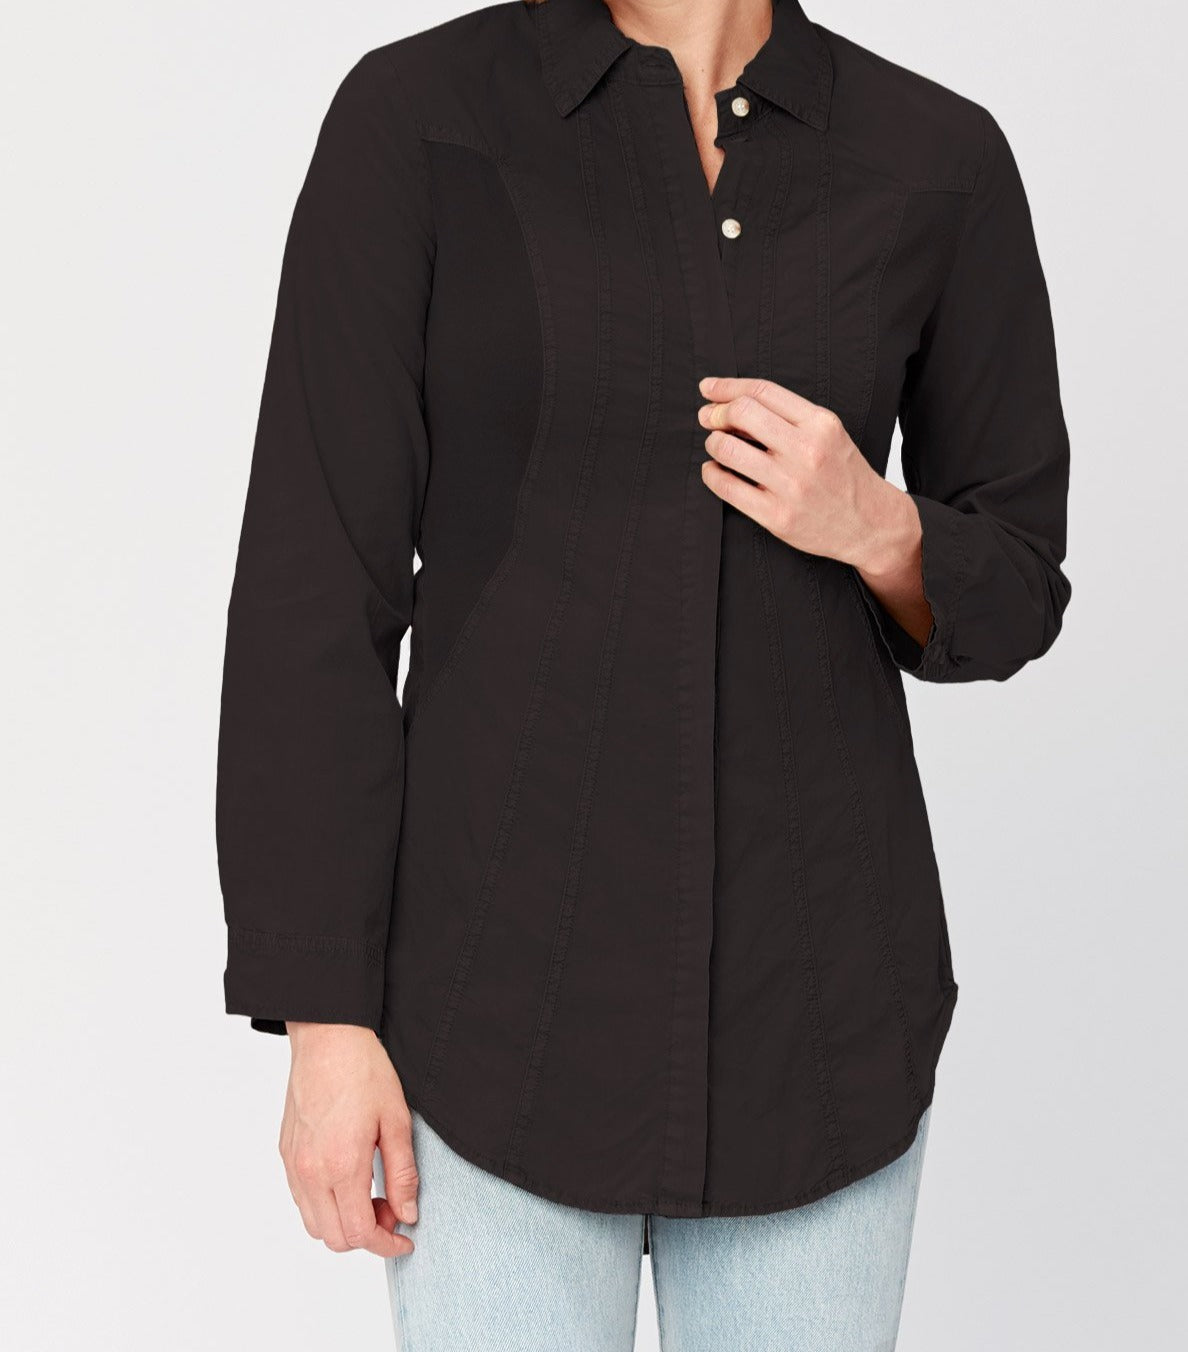 oan Button Up Shirt has hidden buttons at front, vertical style lines for added structure, two button cuffs, stretch cotton jersey inserts at sides for a flattering fit, and a fun lace-up back.